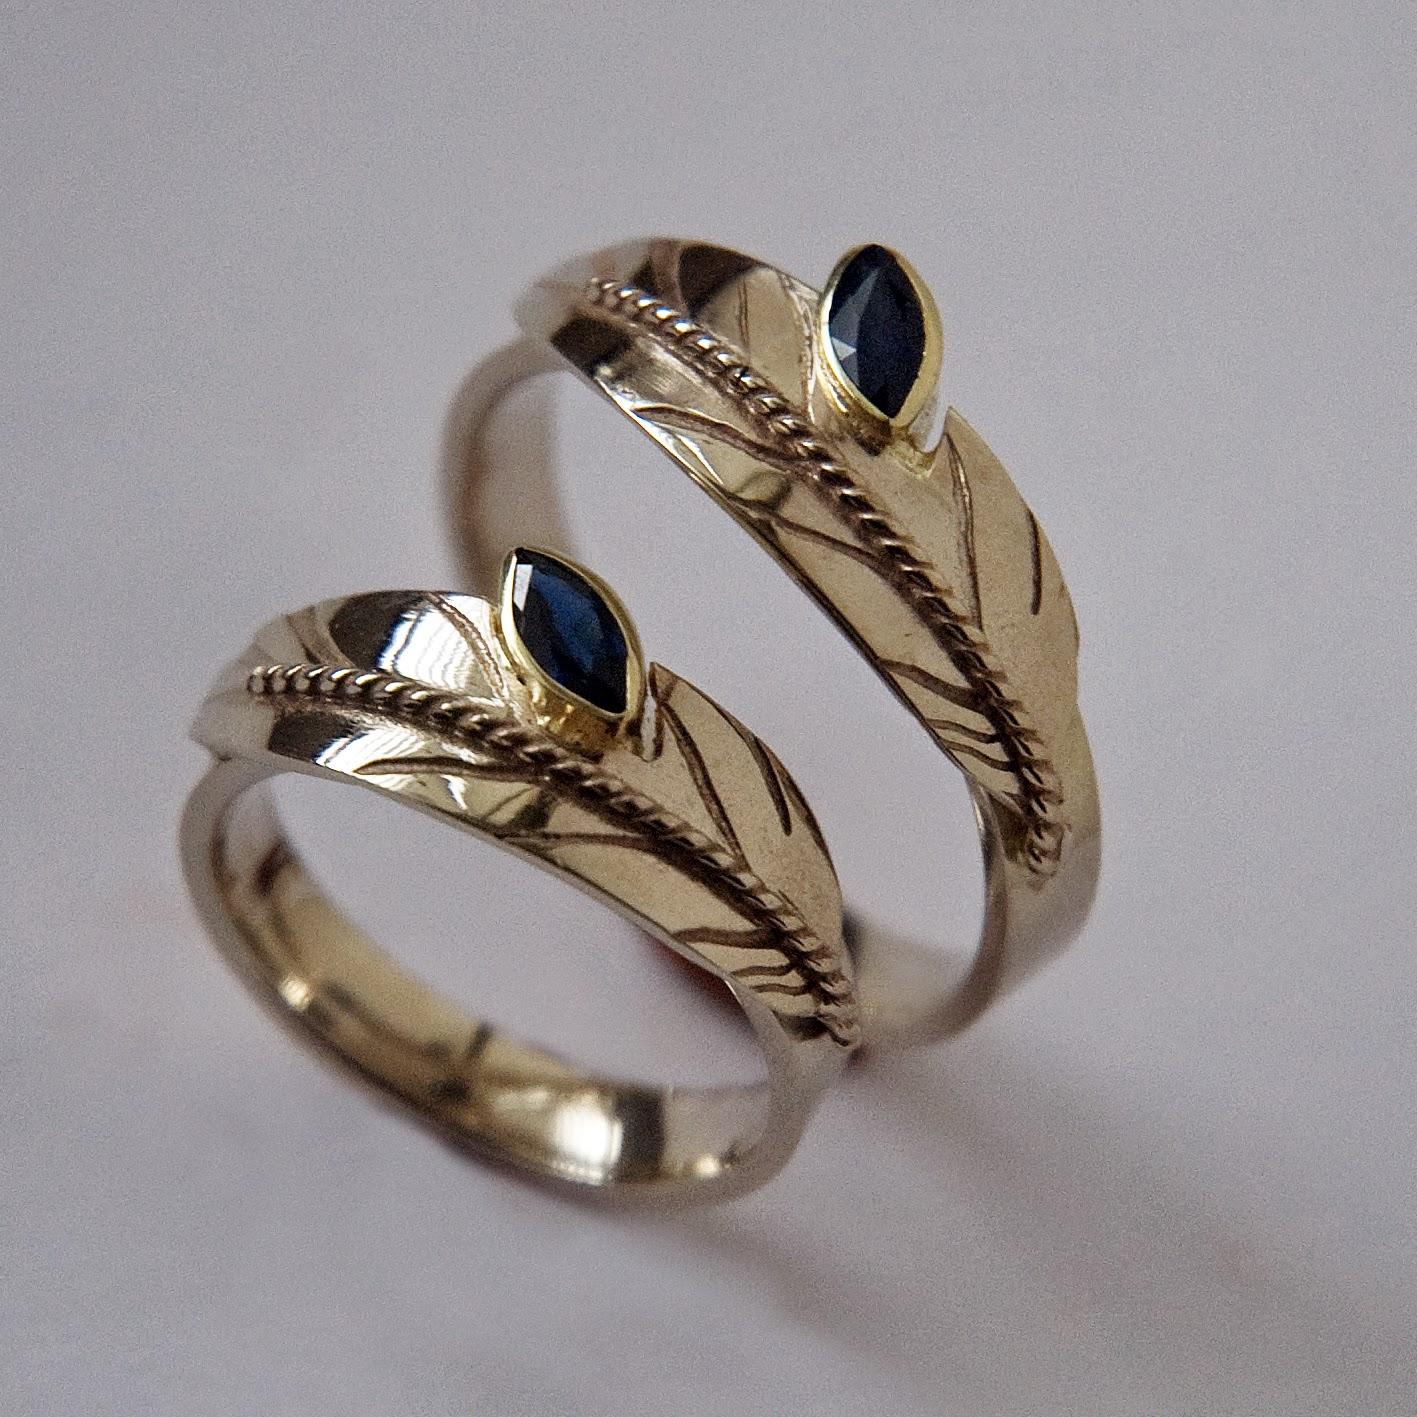 rose rings ring feather gold trinity irish butler and with knot jean engagement plating